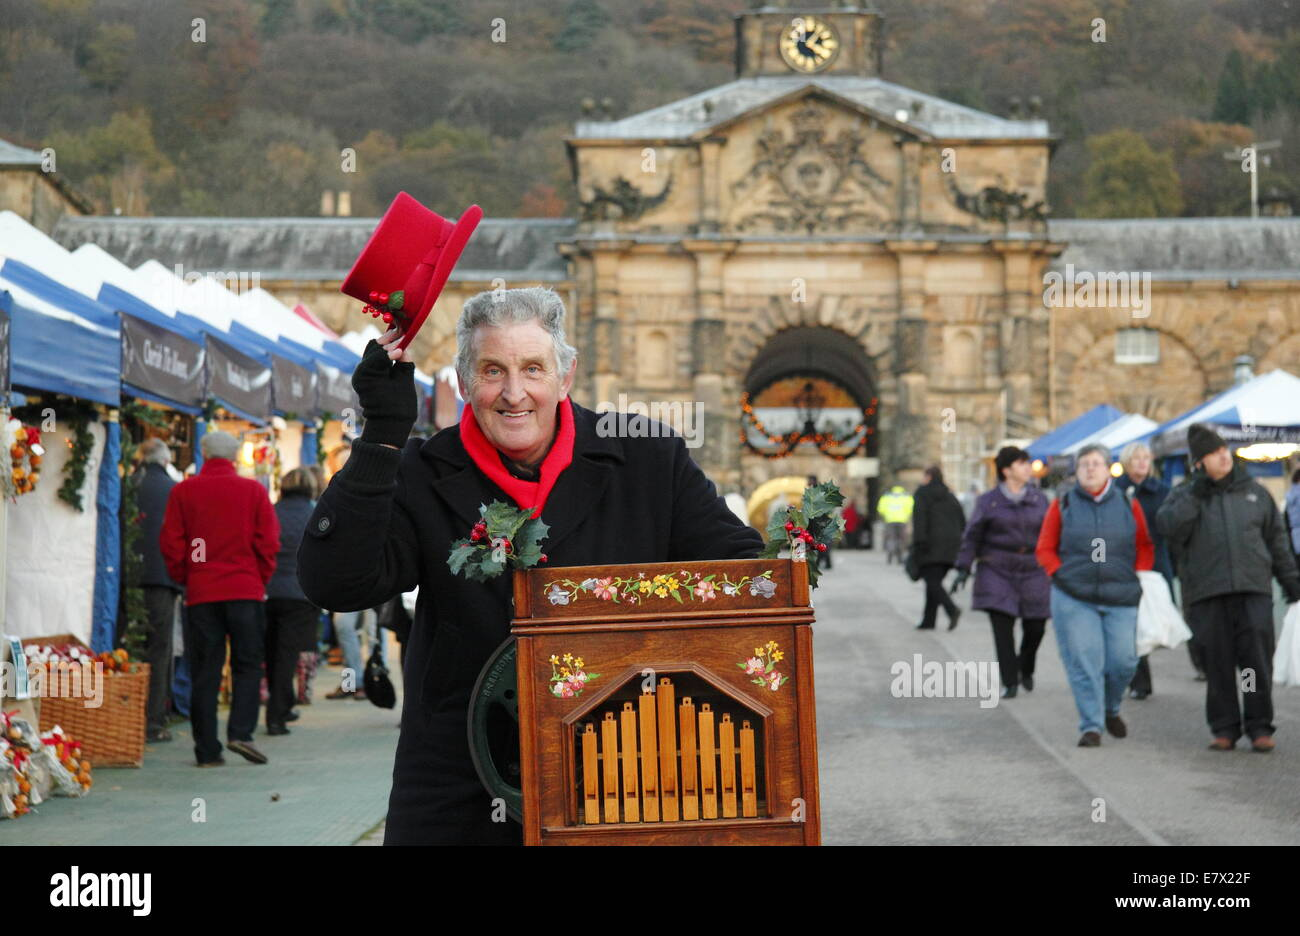 Organ grinder, Patrick Cooke entertains at Chatsworth Christmas Market, Chatsworth  House, Peak District